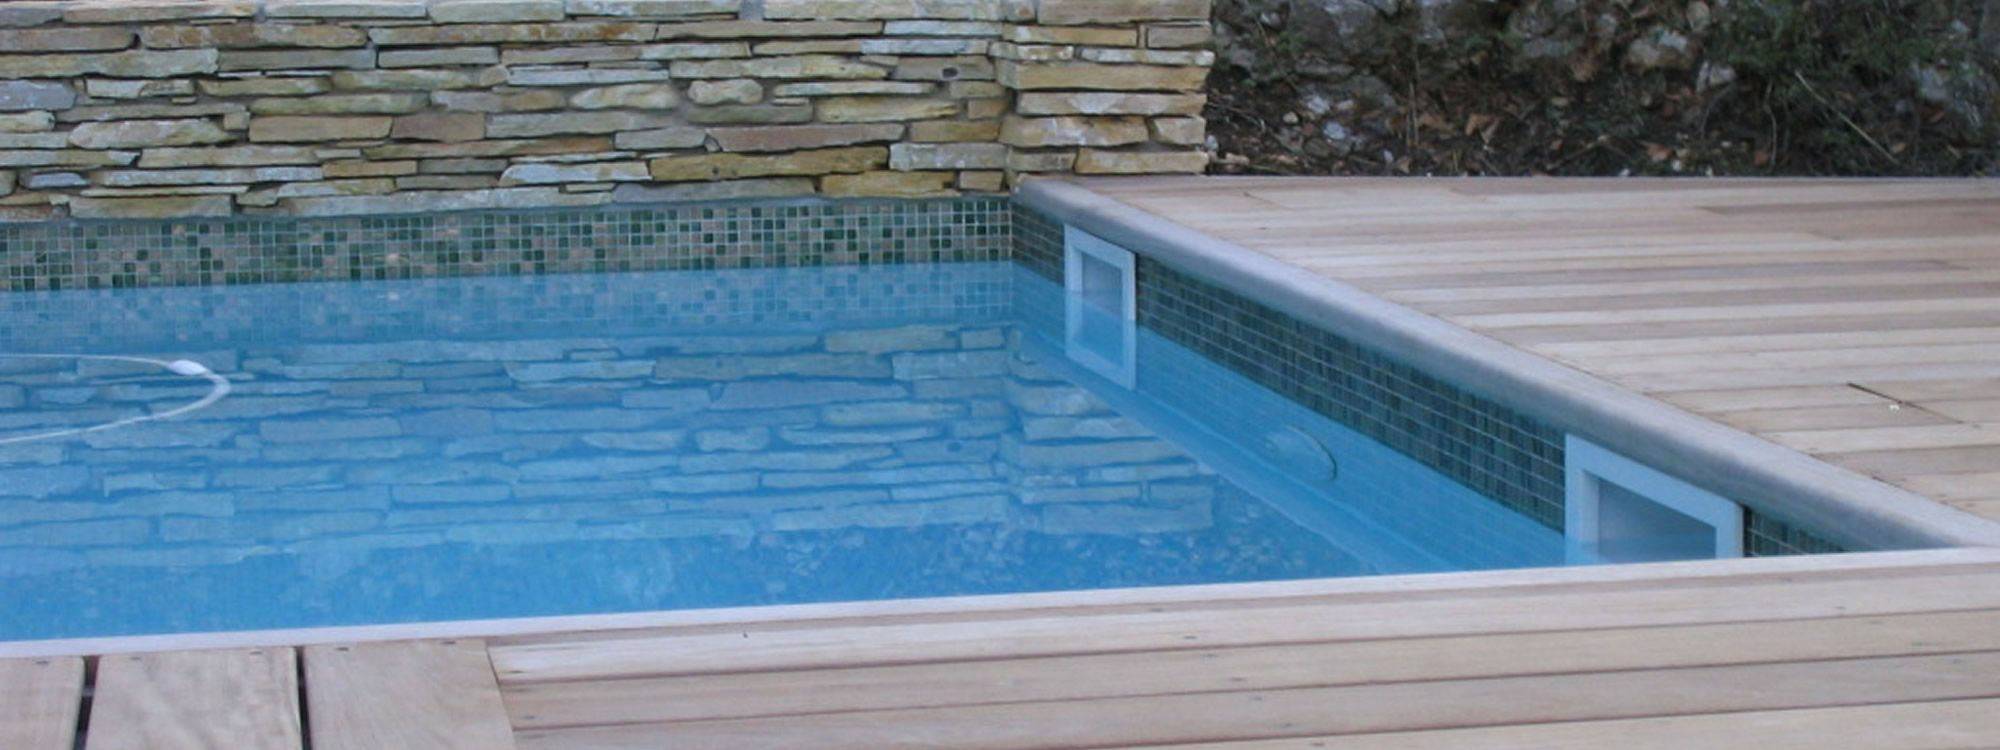 Decoration piscine exterieure piscine ext rieure avec for Decoration piscine exterieure